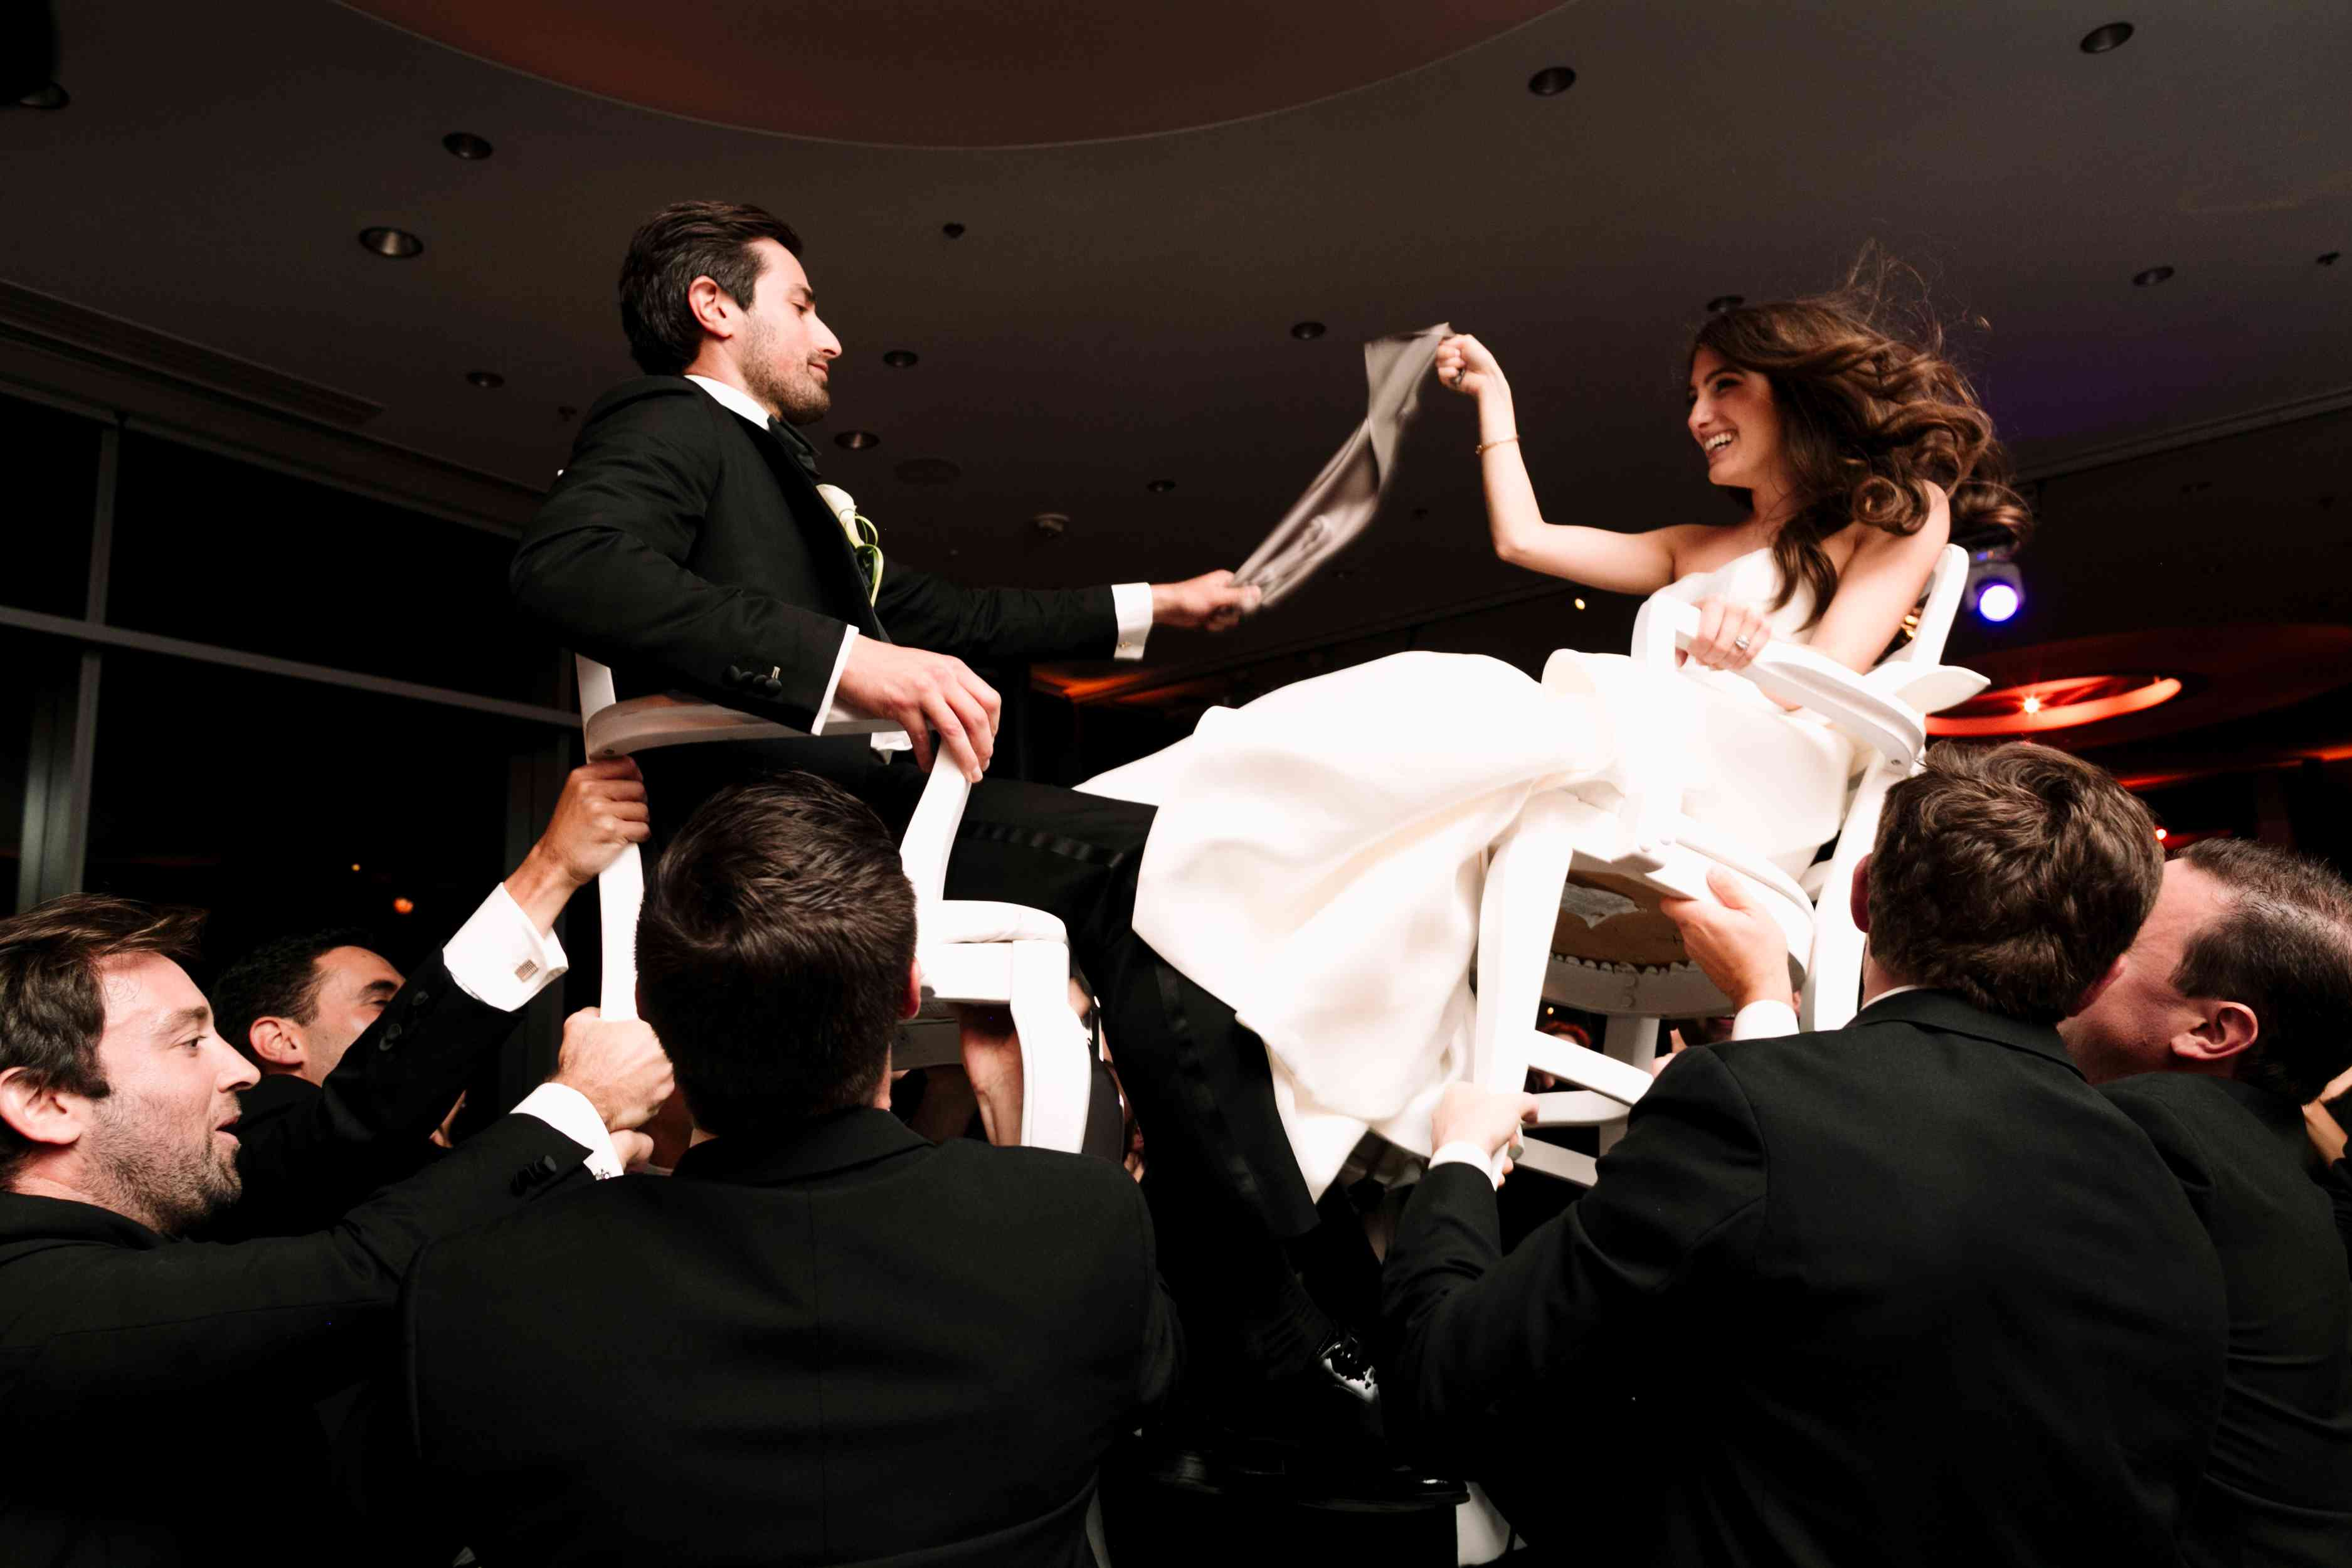 Newlyweds lifted in chairs while dancing